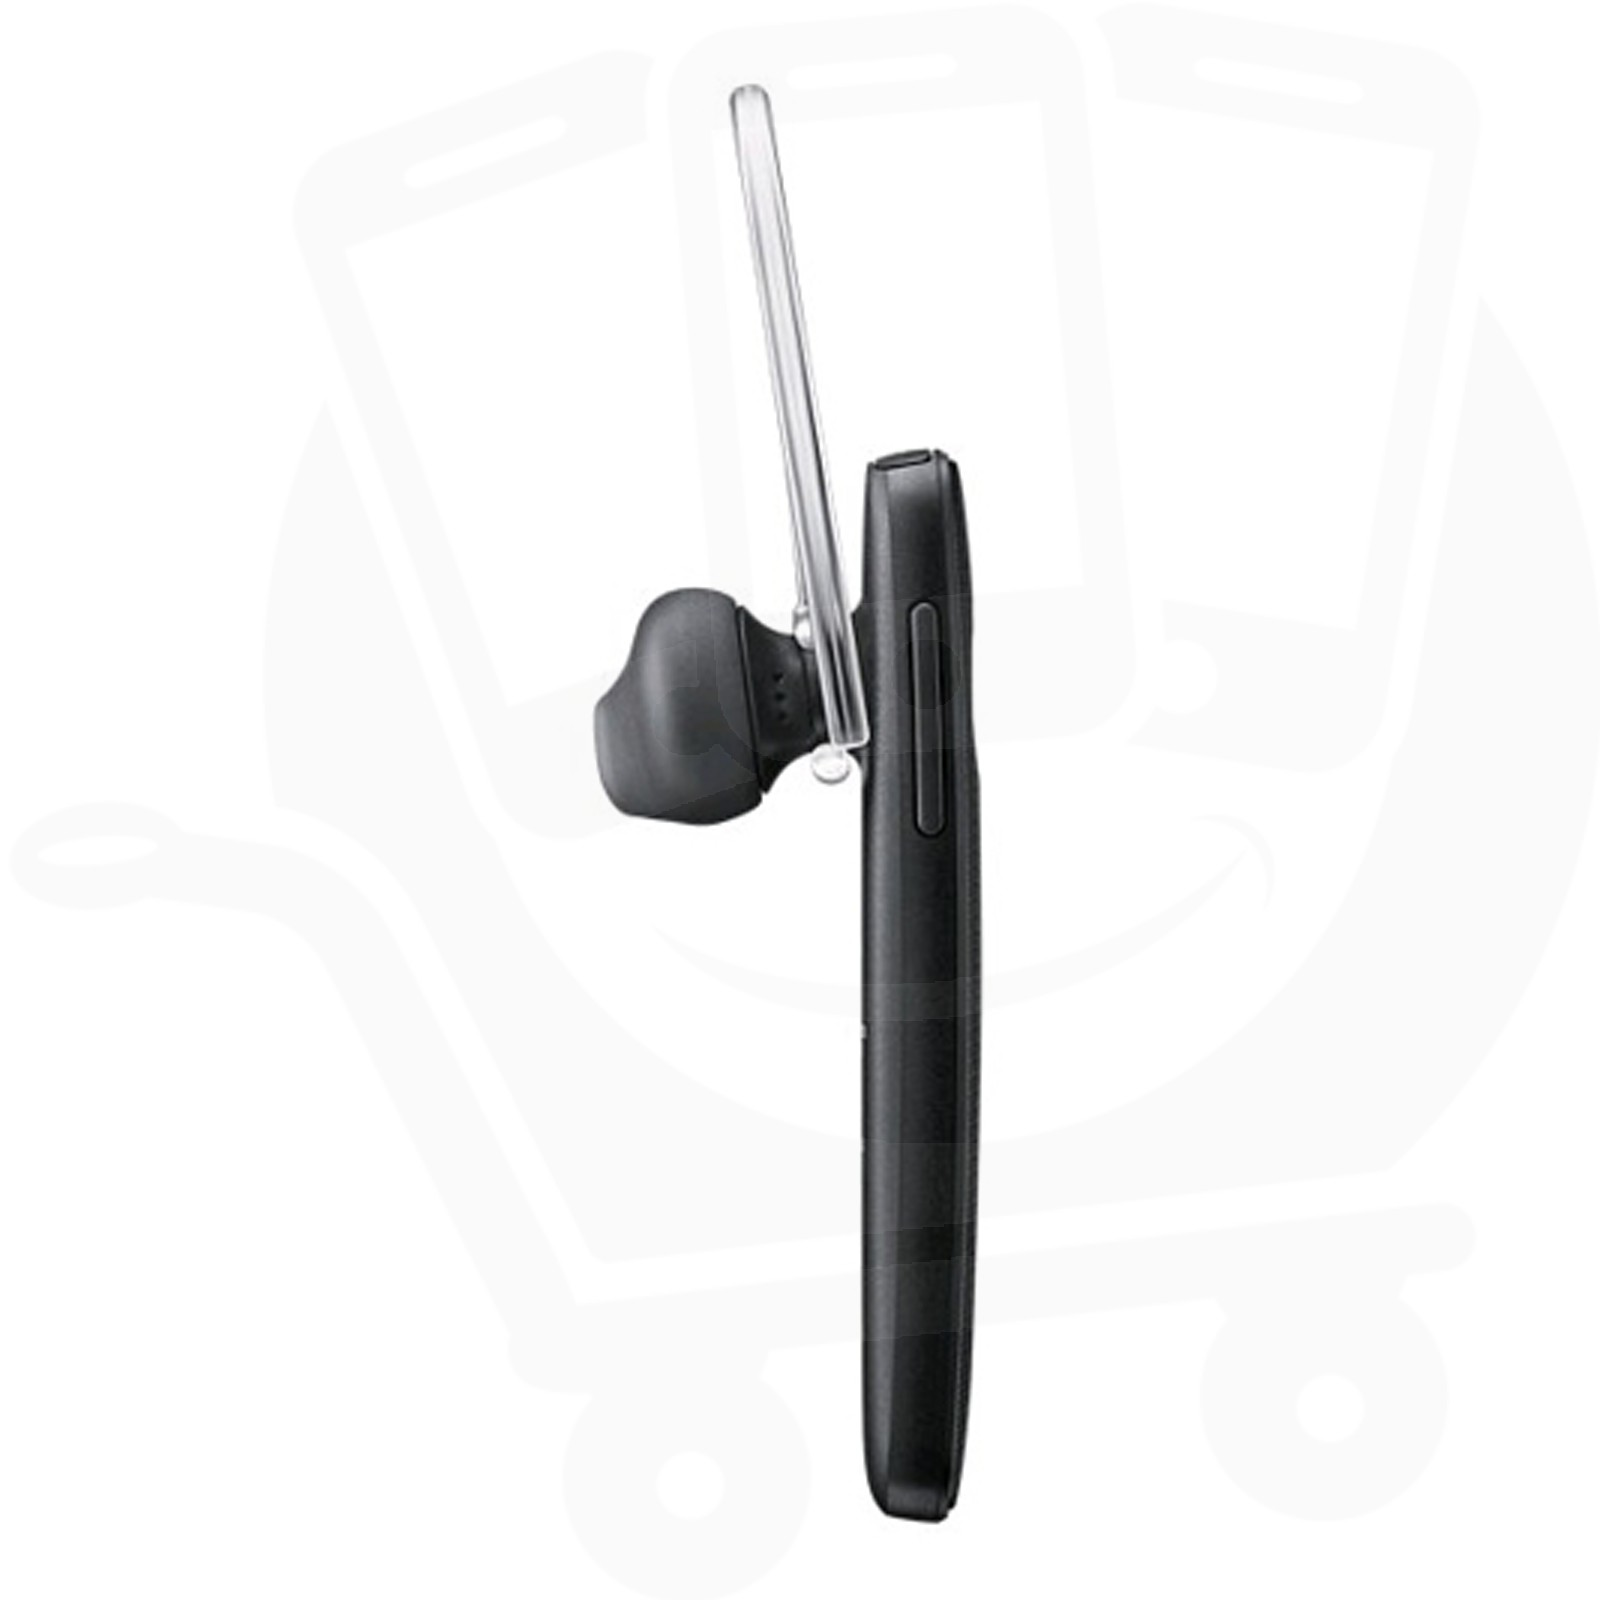 official samsung eo mg920bbe black mono bluetooth headset. Black Bedroom Furniture Sets. Home Design Ideas